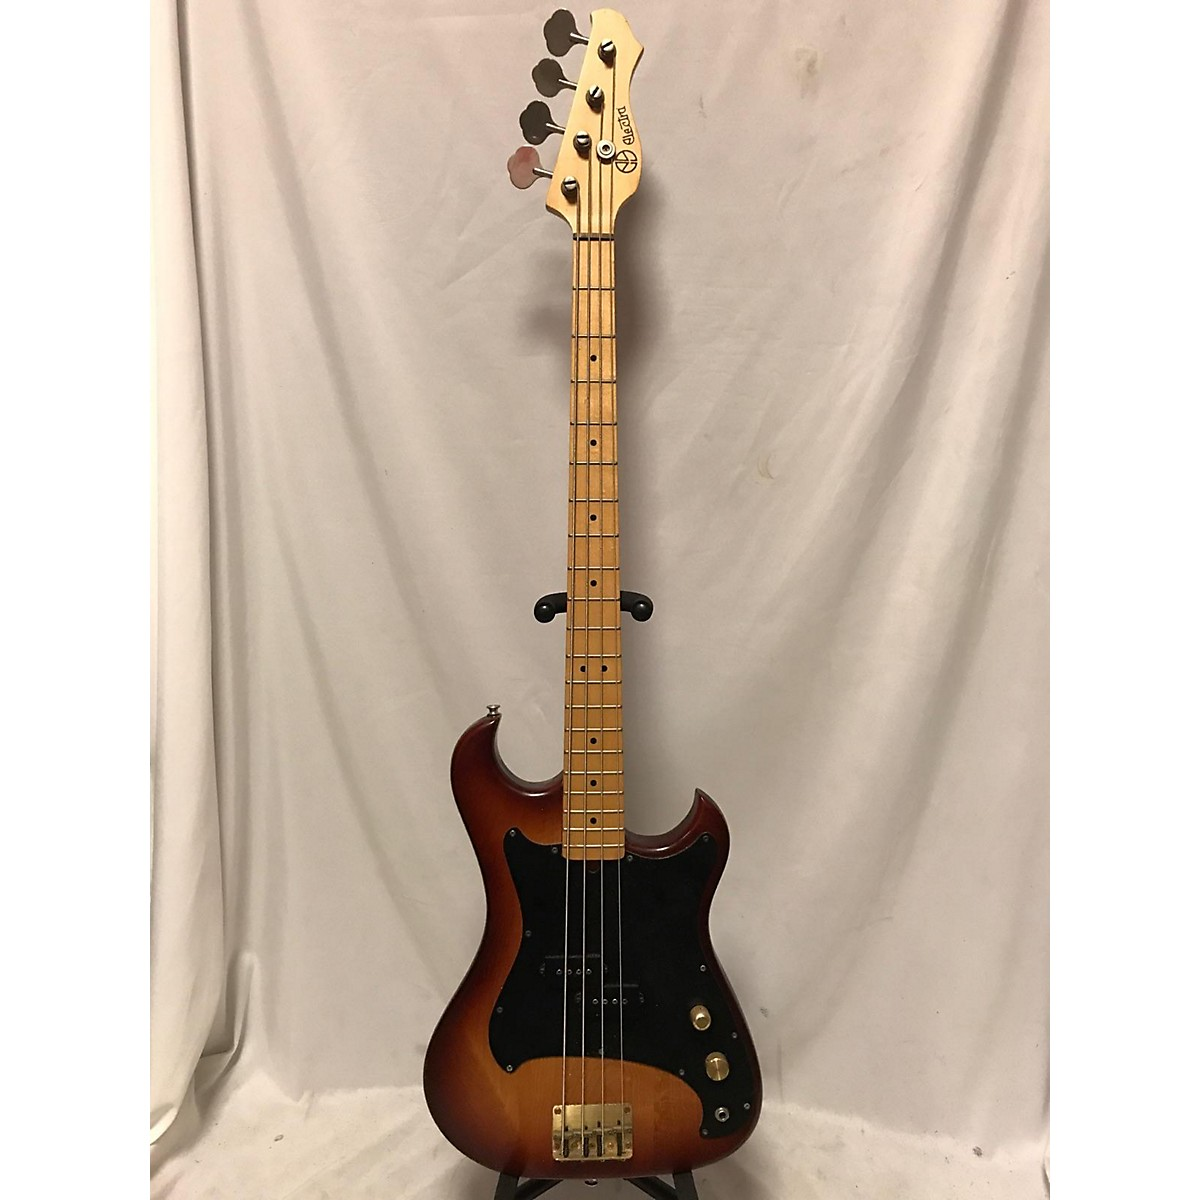 Electra X630 Electric Bass Guitar